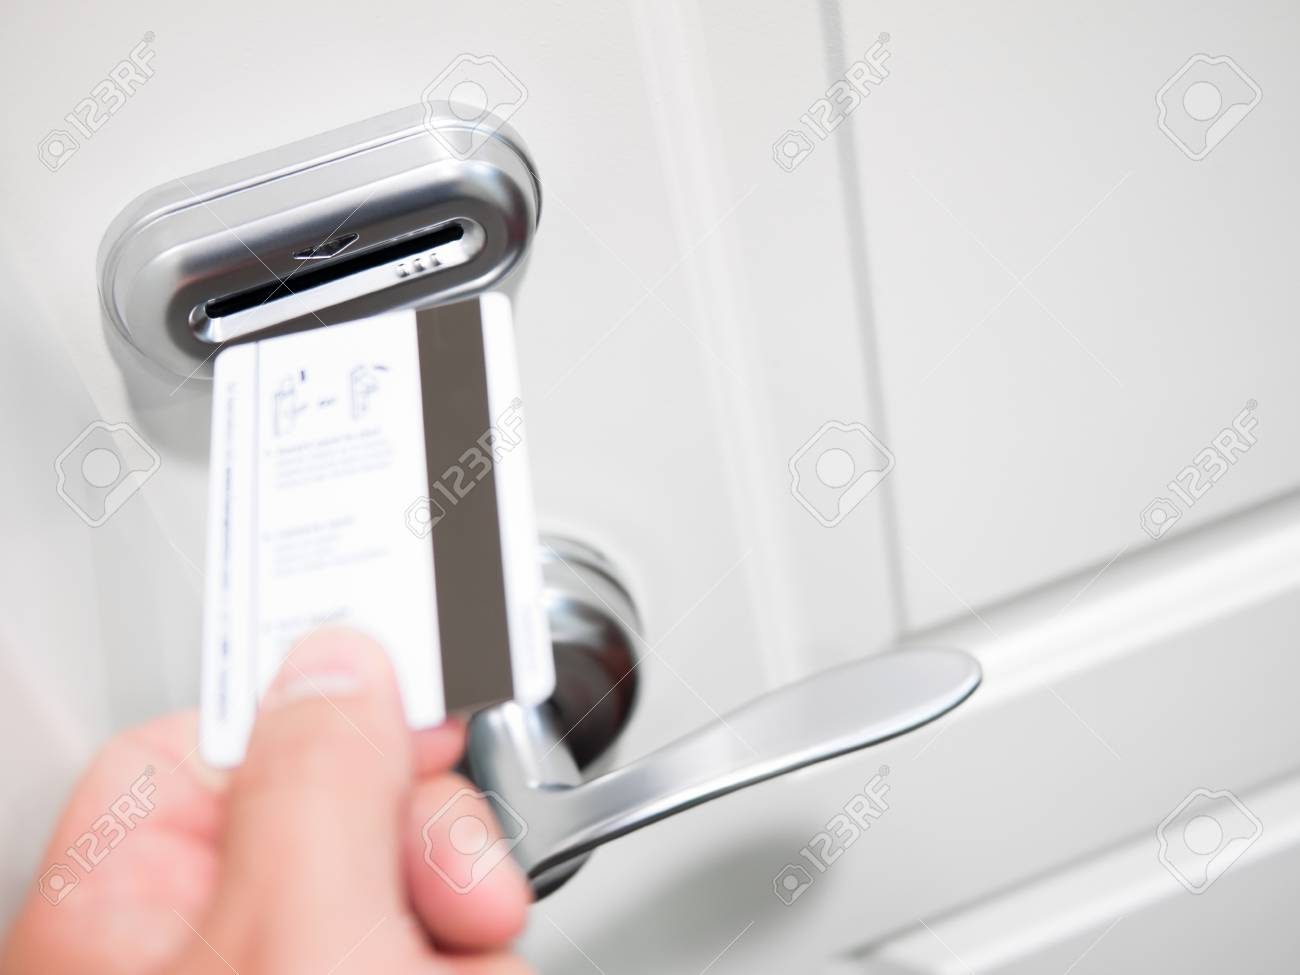 A person's hand inserting a keycard into an electronic door lock